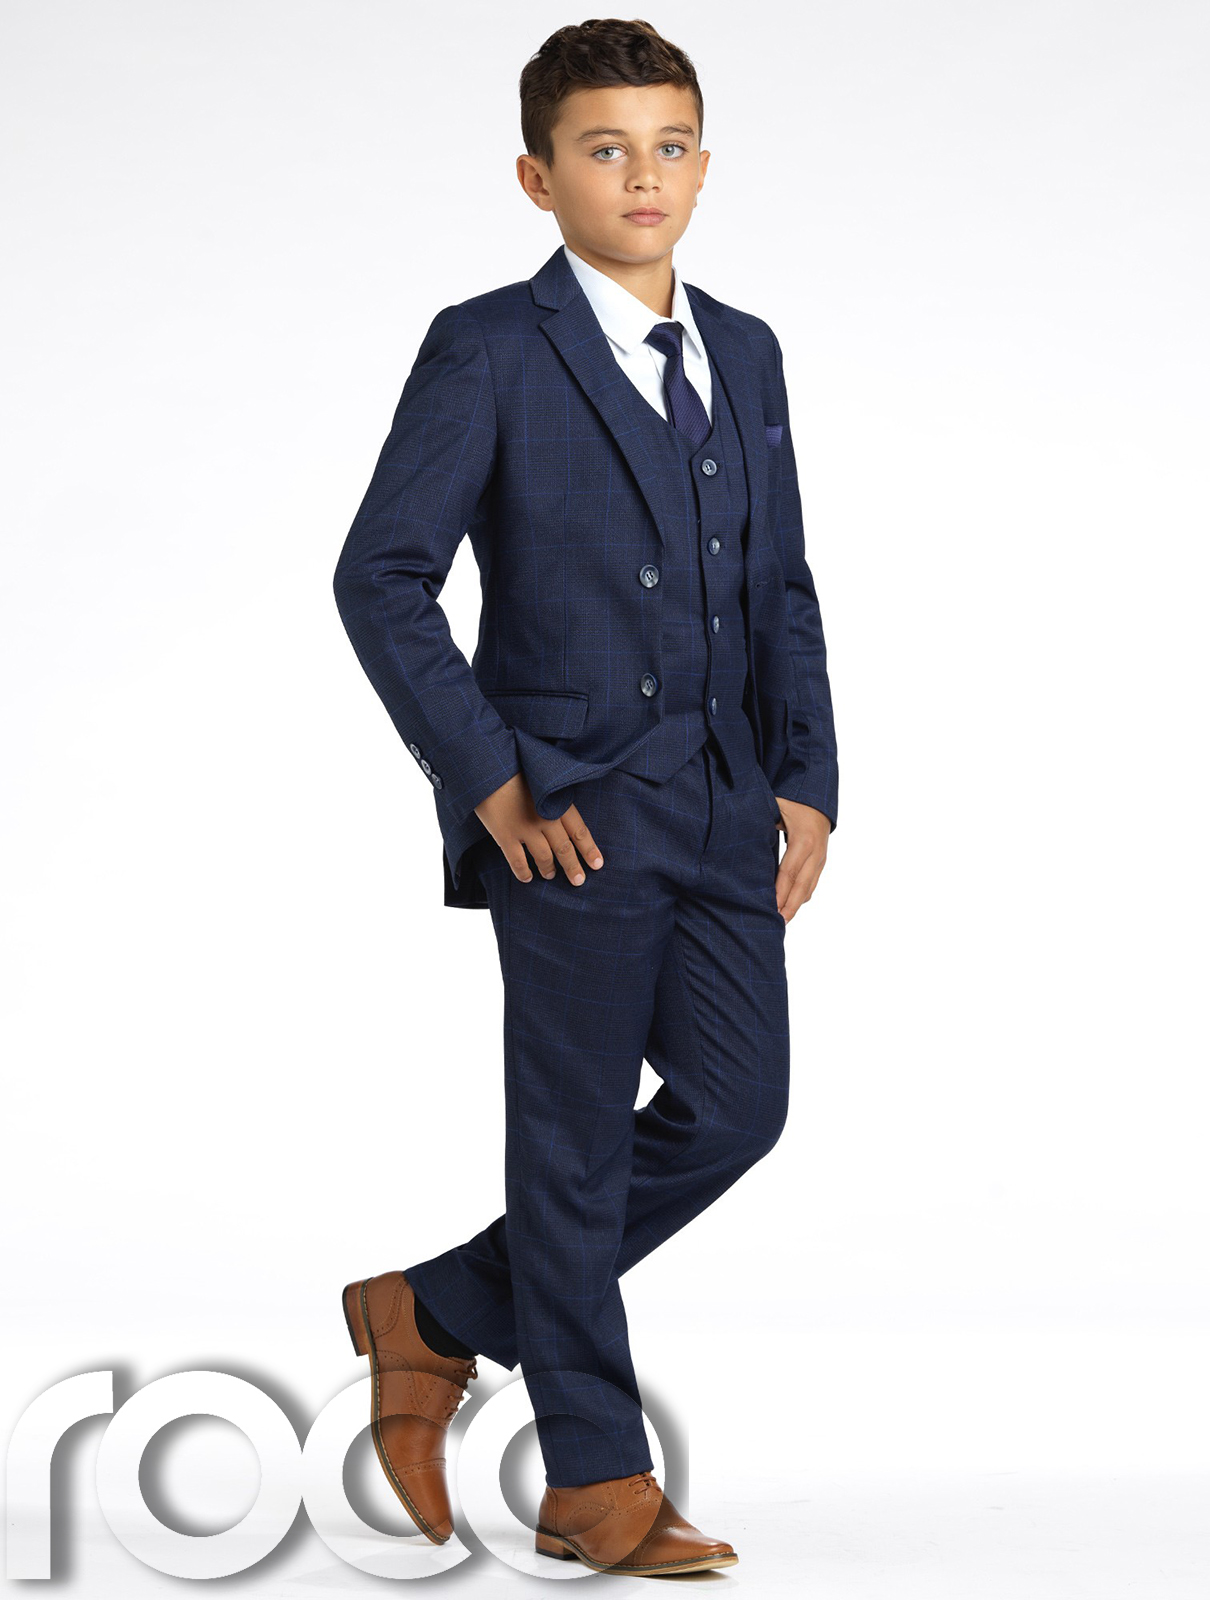 Boys navy suit boys grey suit boys check suit slim fit suit page boy suit ebay - Kommunionanzug modern ...